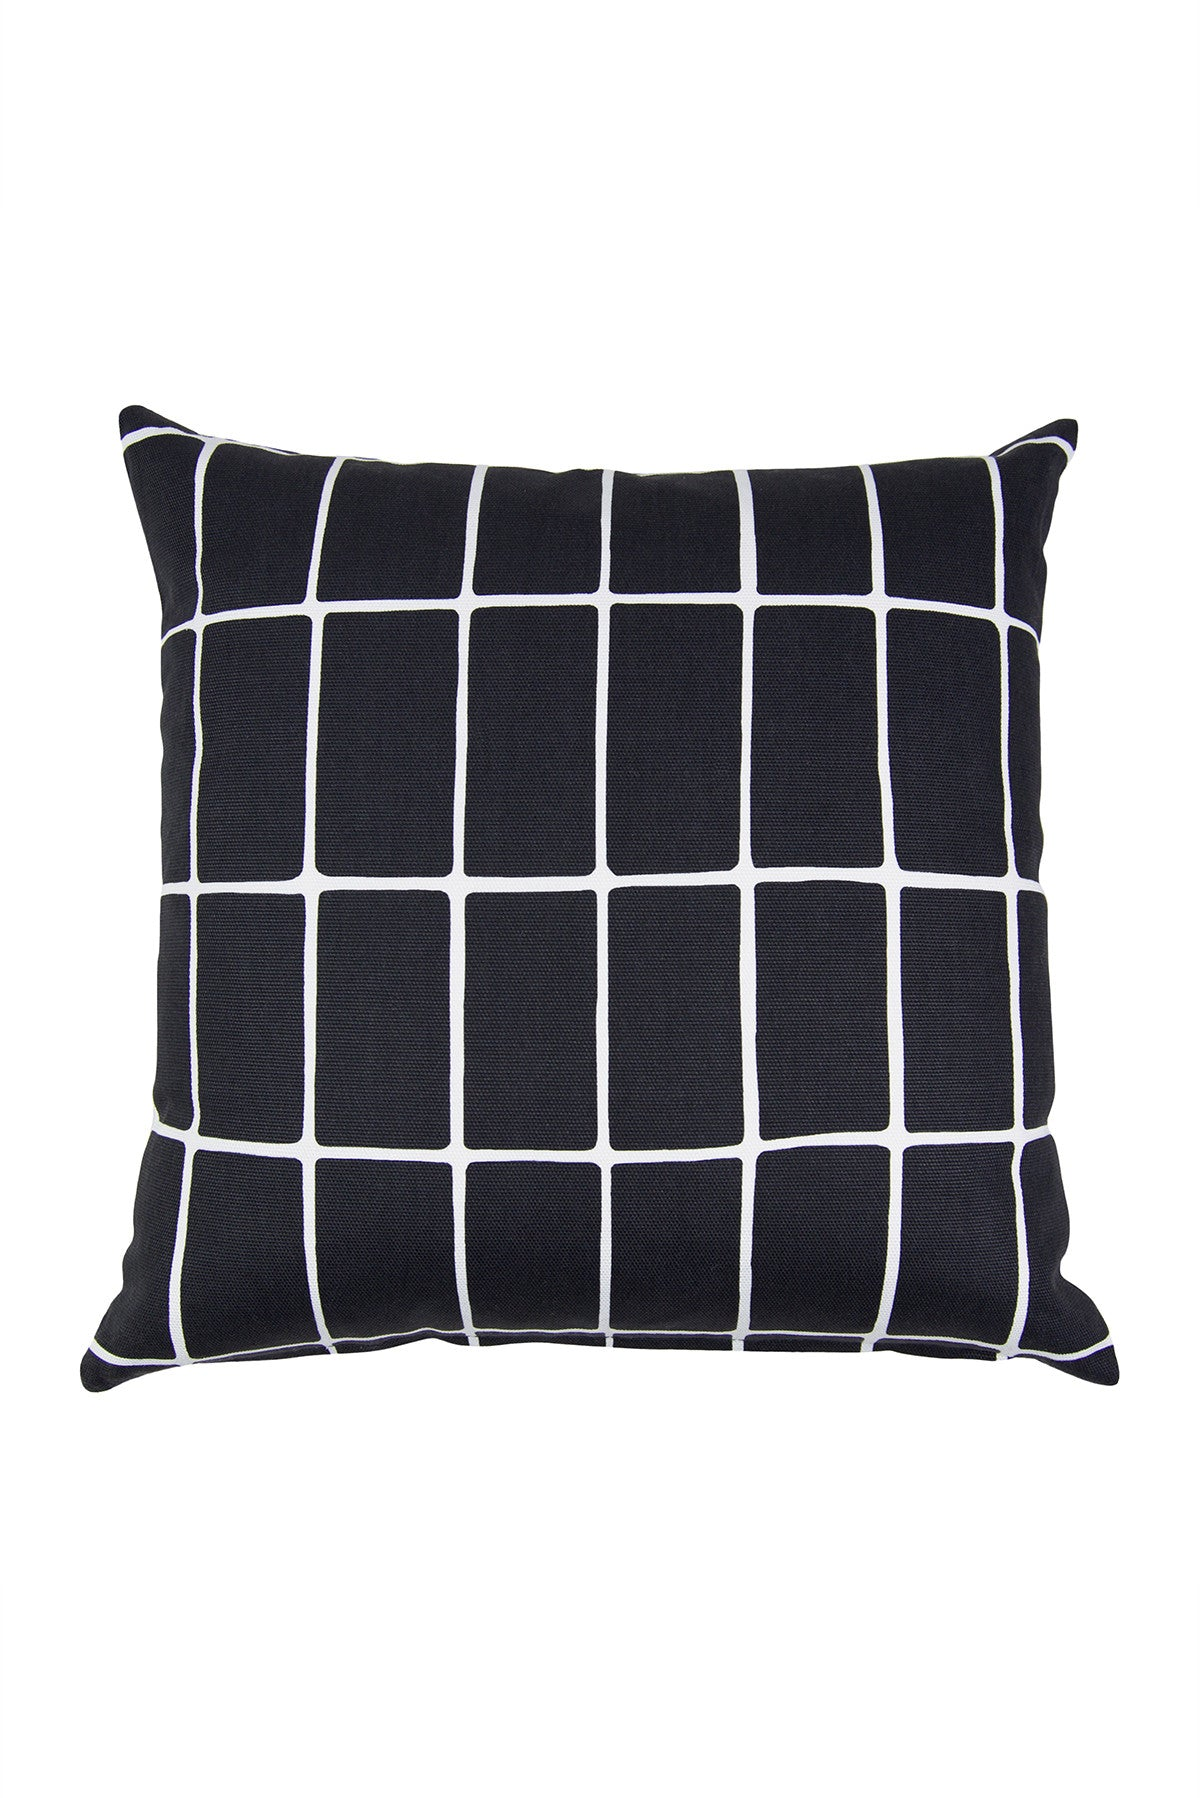 Glaze White Scatter Cushion from Florrie and Bill